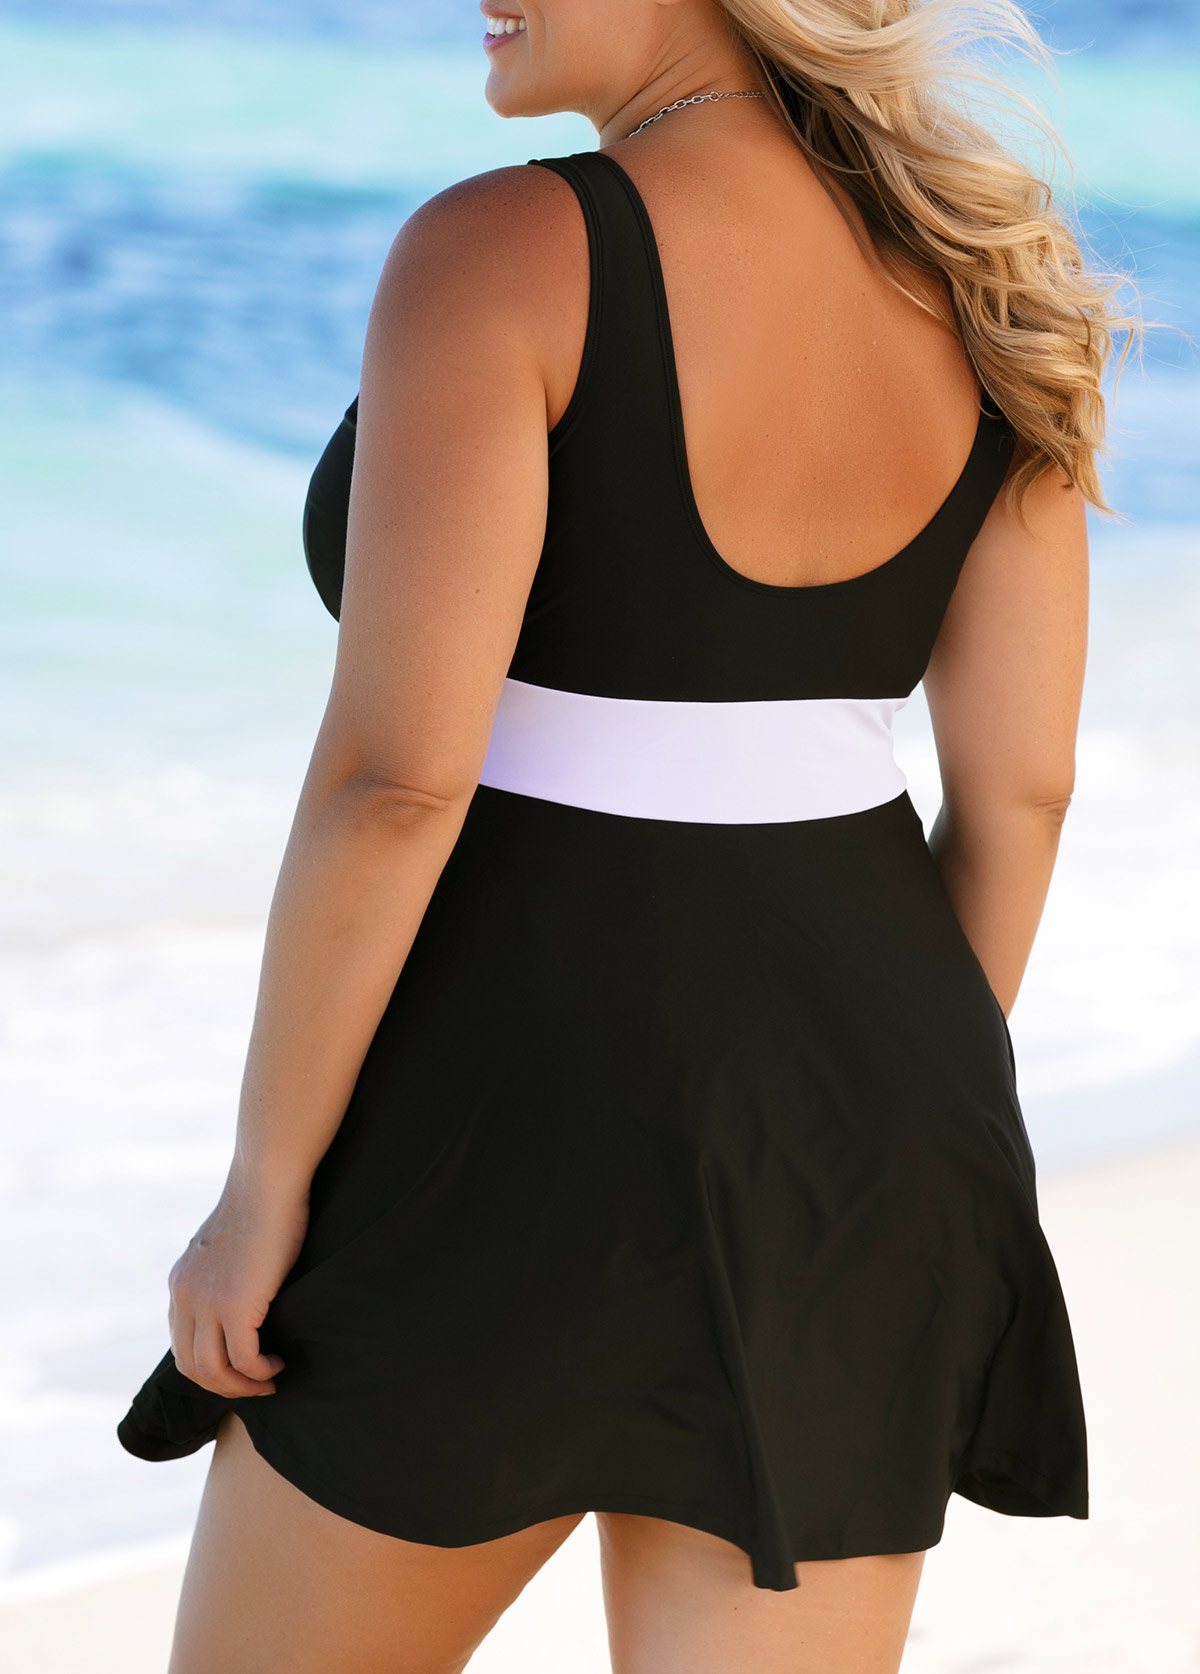 a7f6302a113 Plus Size Scoop Back Black Swimdress and Panty. AddThis Sharing Buttons.  Share to Facebook Share to Pinterest